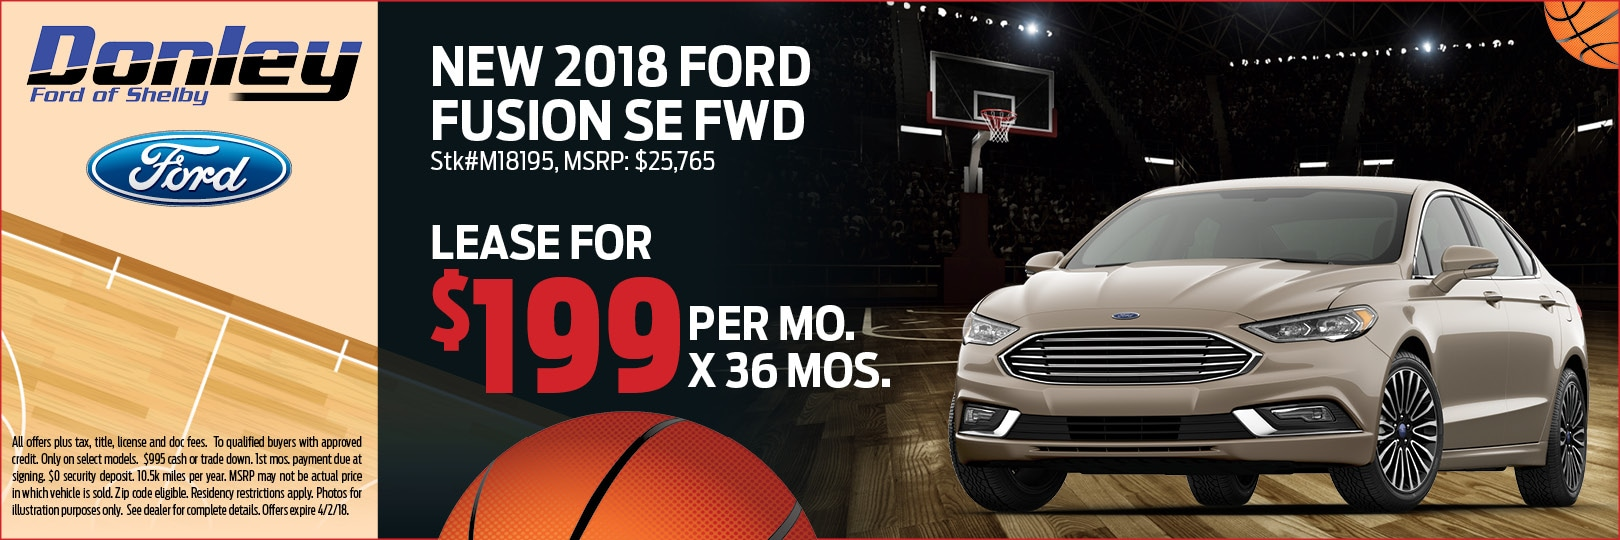 2018 Ford Fusion SE FWD in Shelby, OH